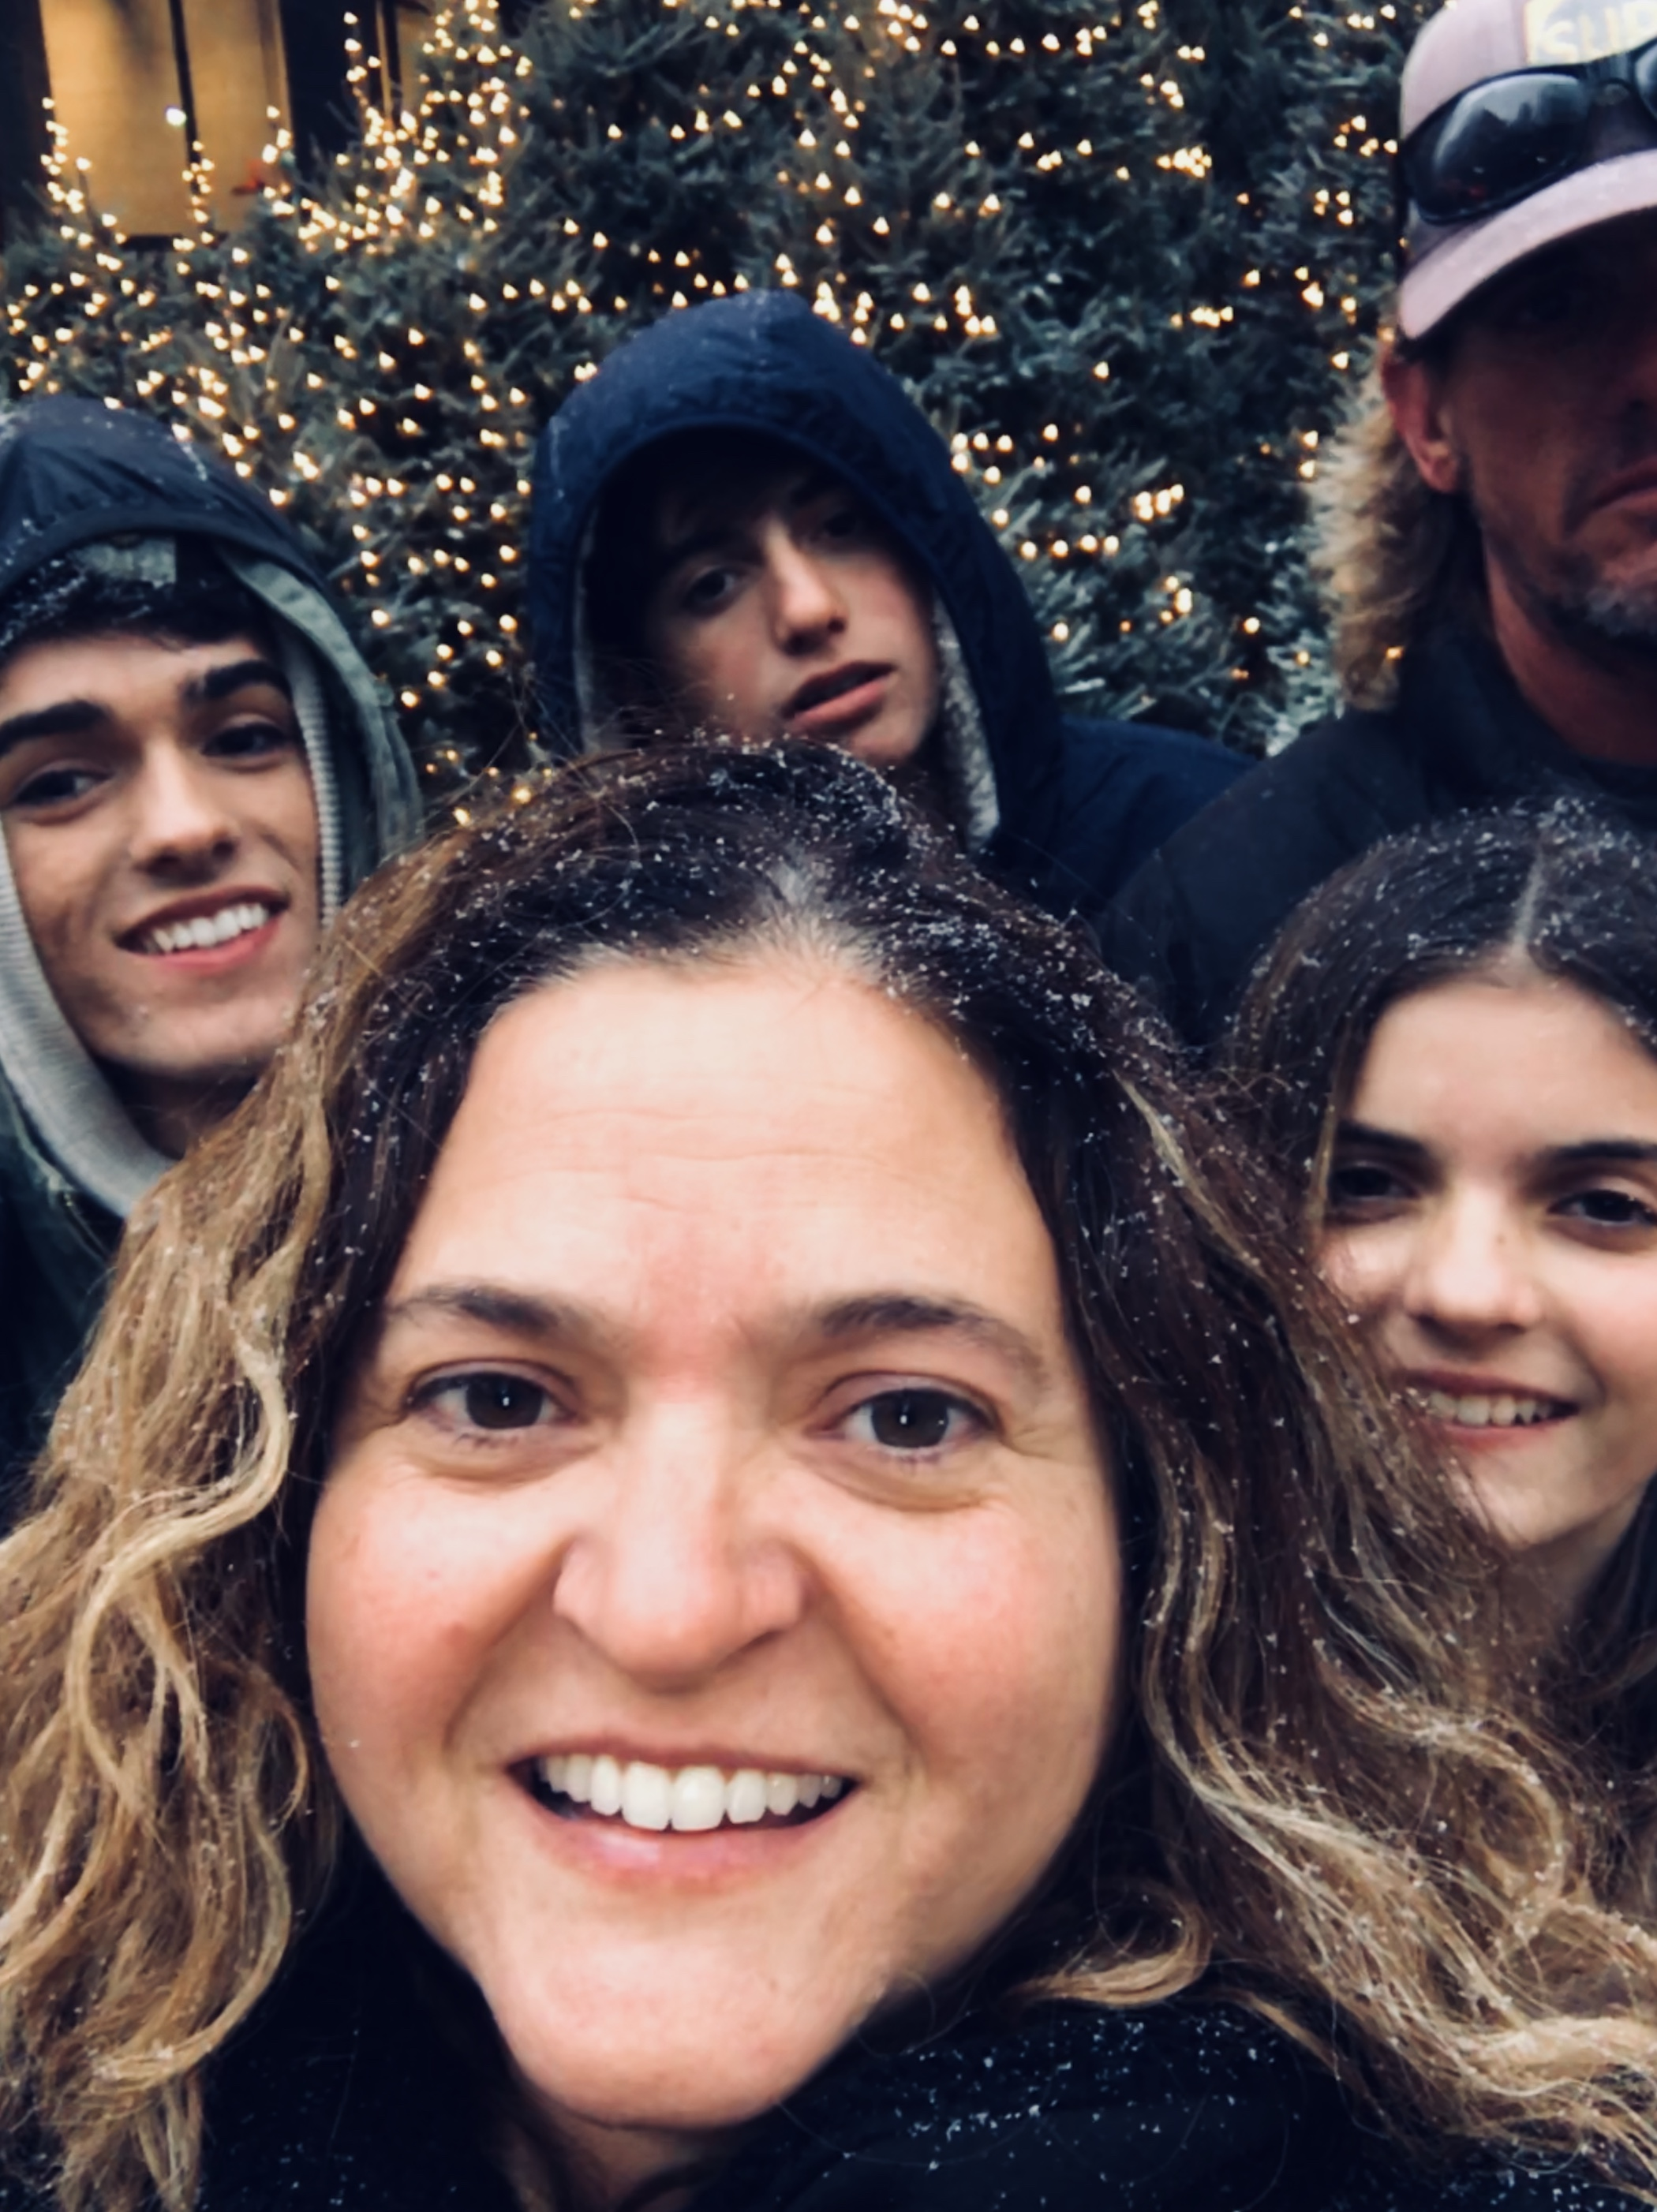 family of five selfie in New York City in the snow